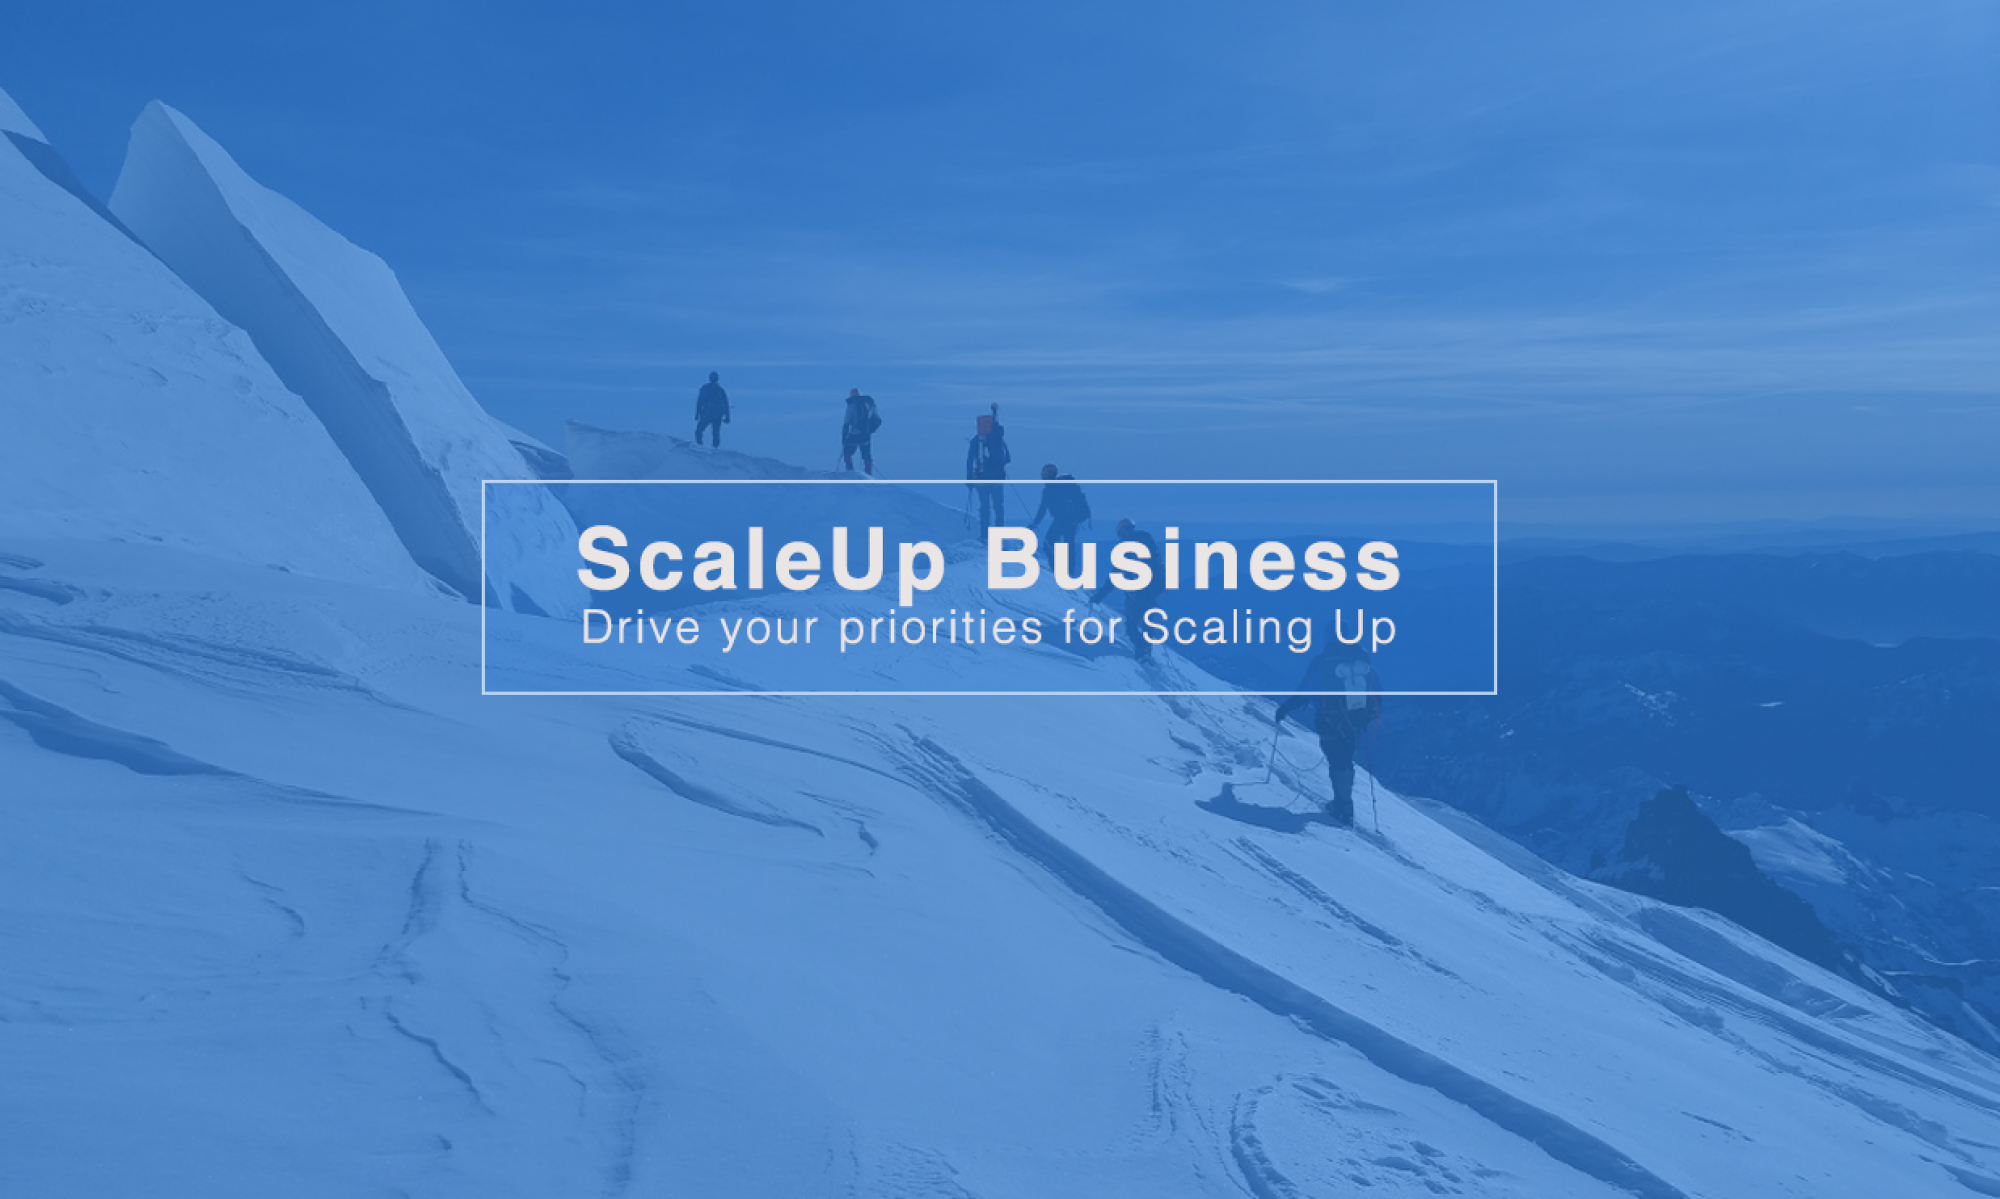 ScaleUp Business